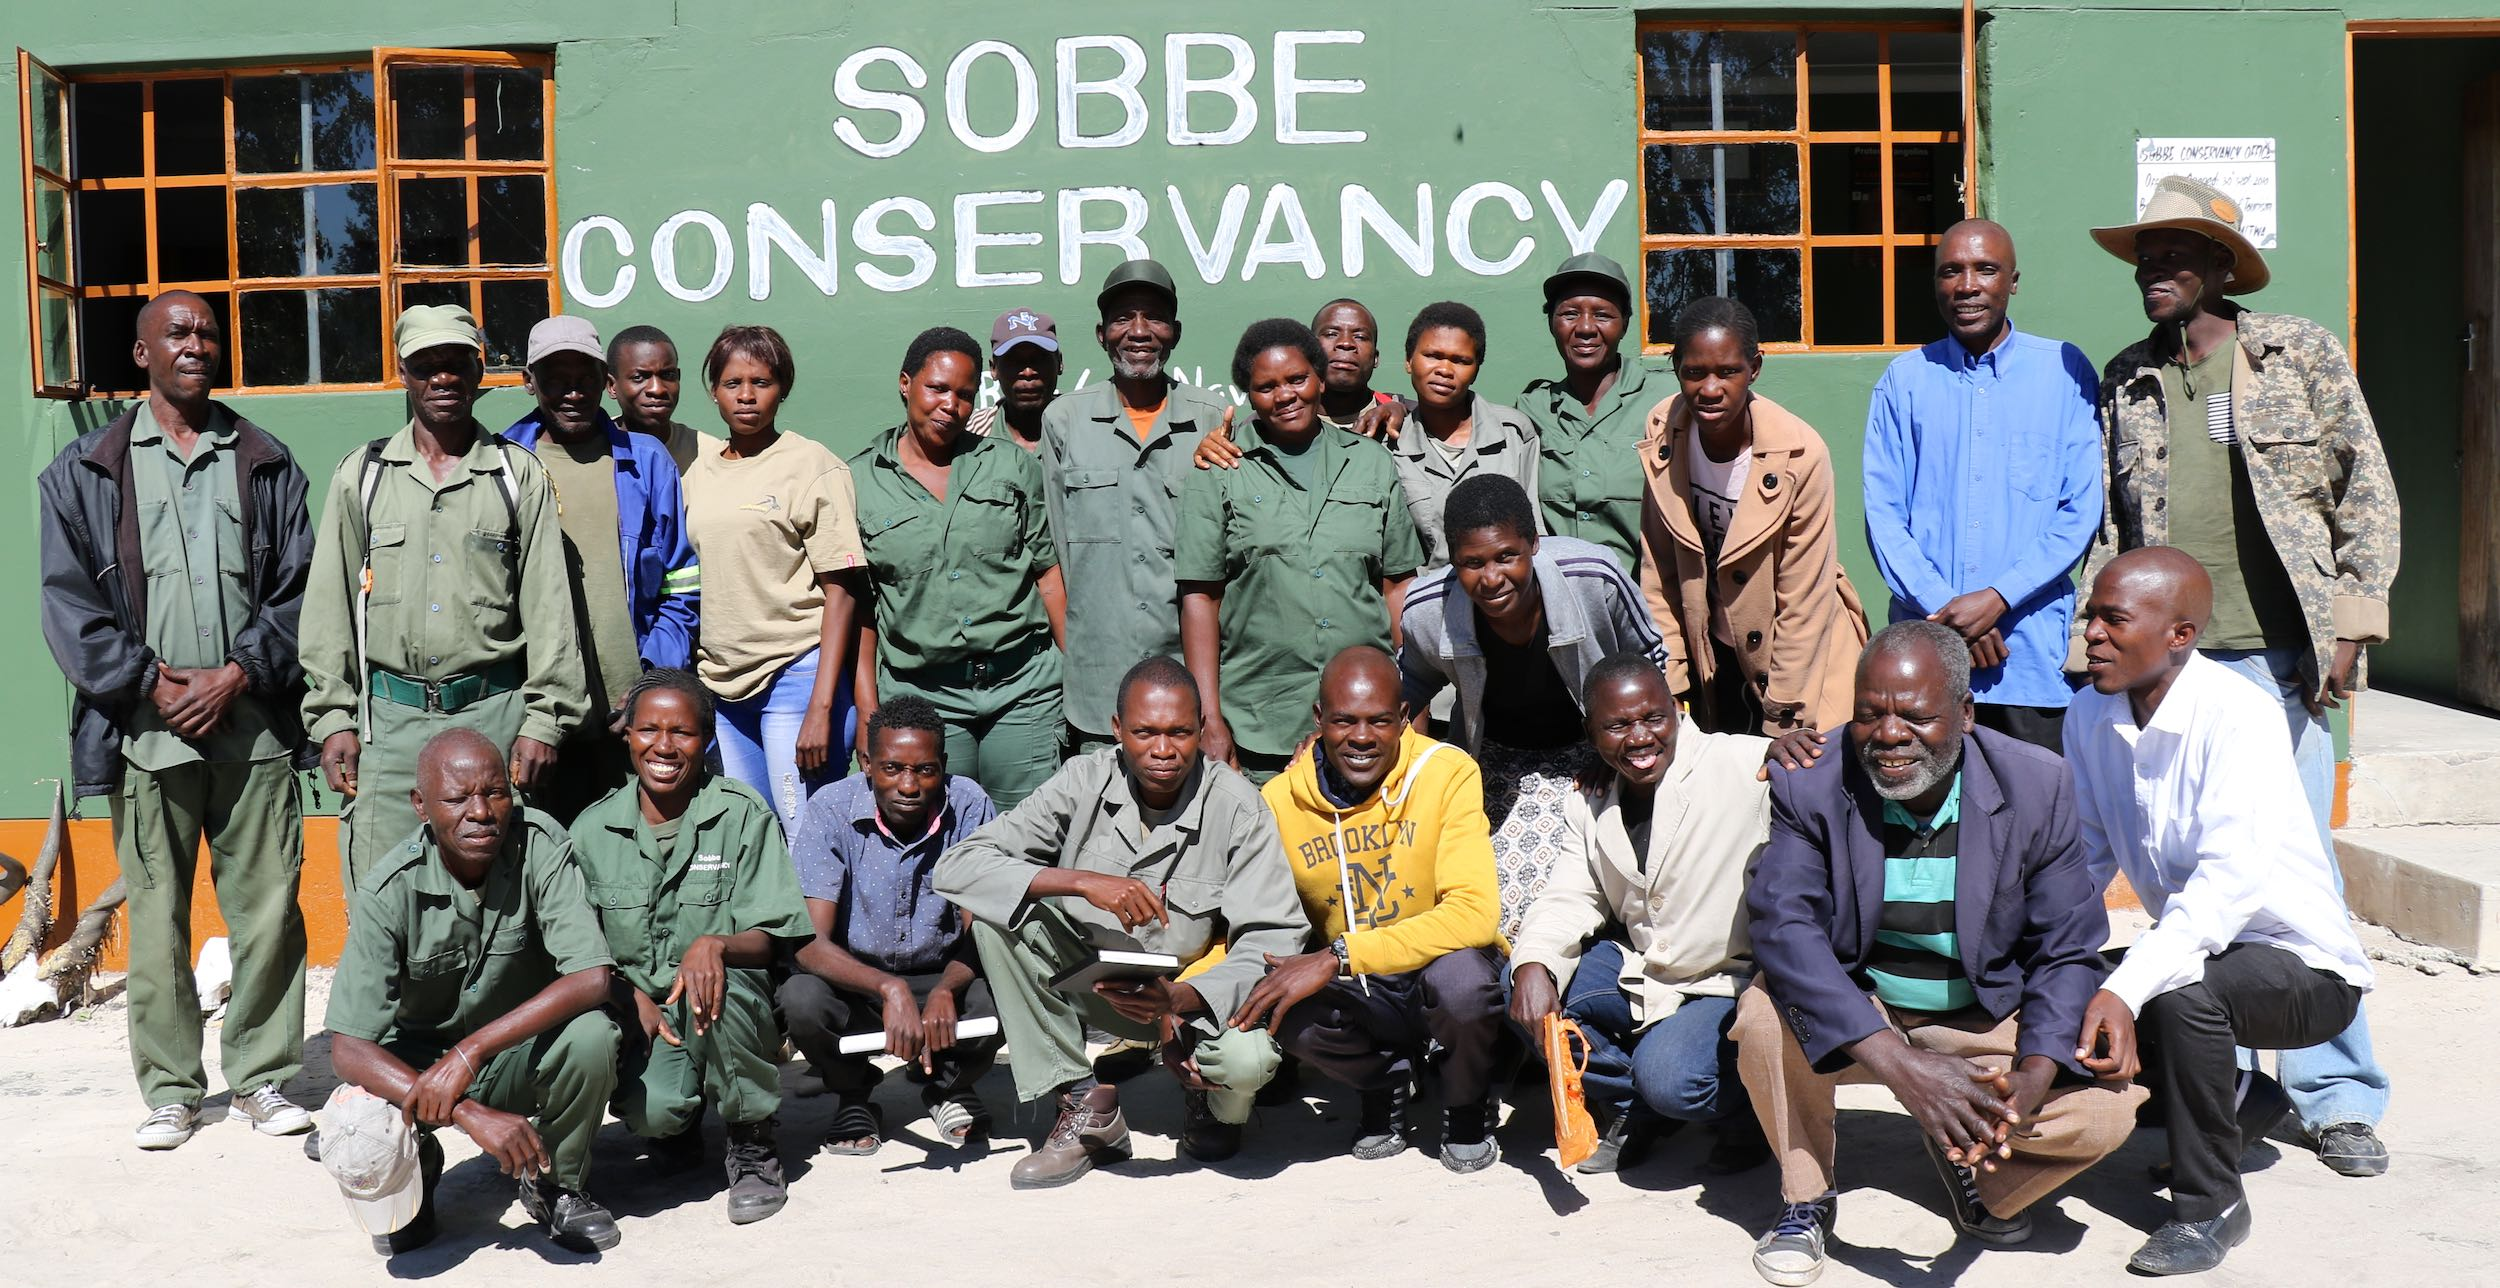 A group of Namibian men and women pose outside a green building.